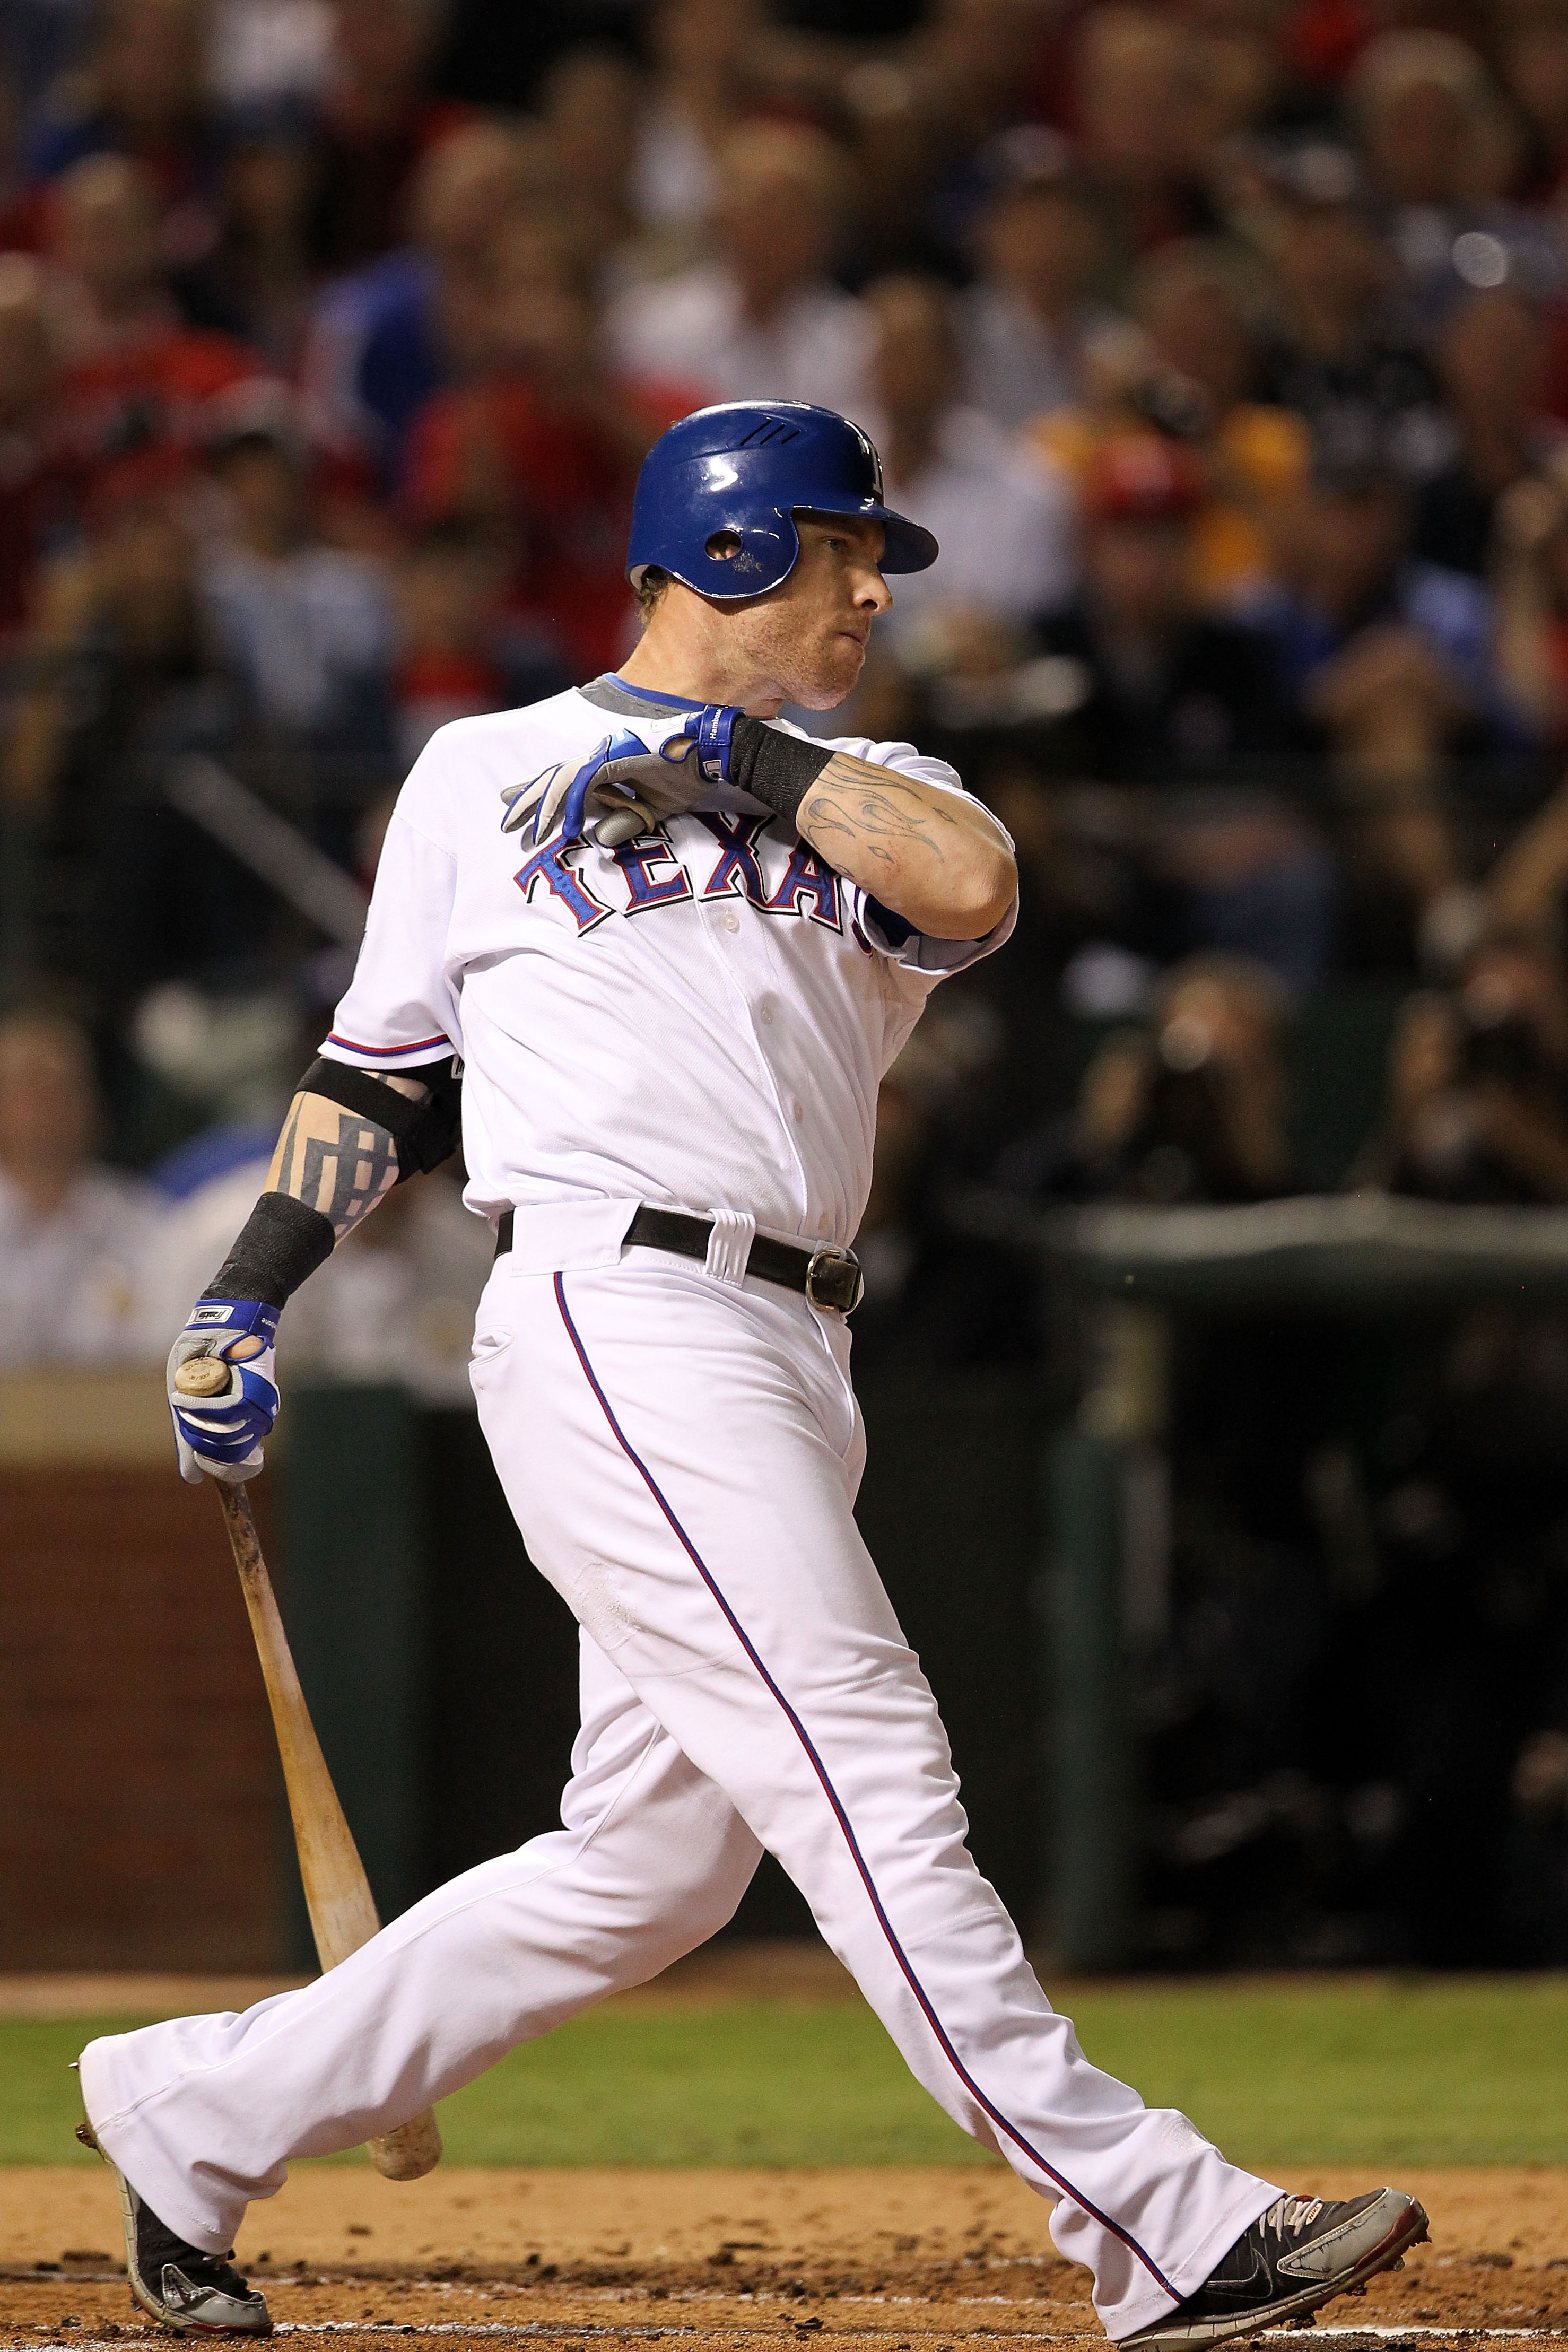 ARLINGTON, TX - NOVEMBER 01:  Josh Hamilton #32 of the Texas Rangers bats against the San Francisco Giants in Game Five of the 2010 MLB World Series at Rangers Ballpark in Arlington on November 1, 2010 in Arlington, Texas. The Giants won 3-1. (Photo by Ro